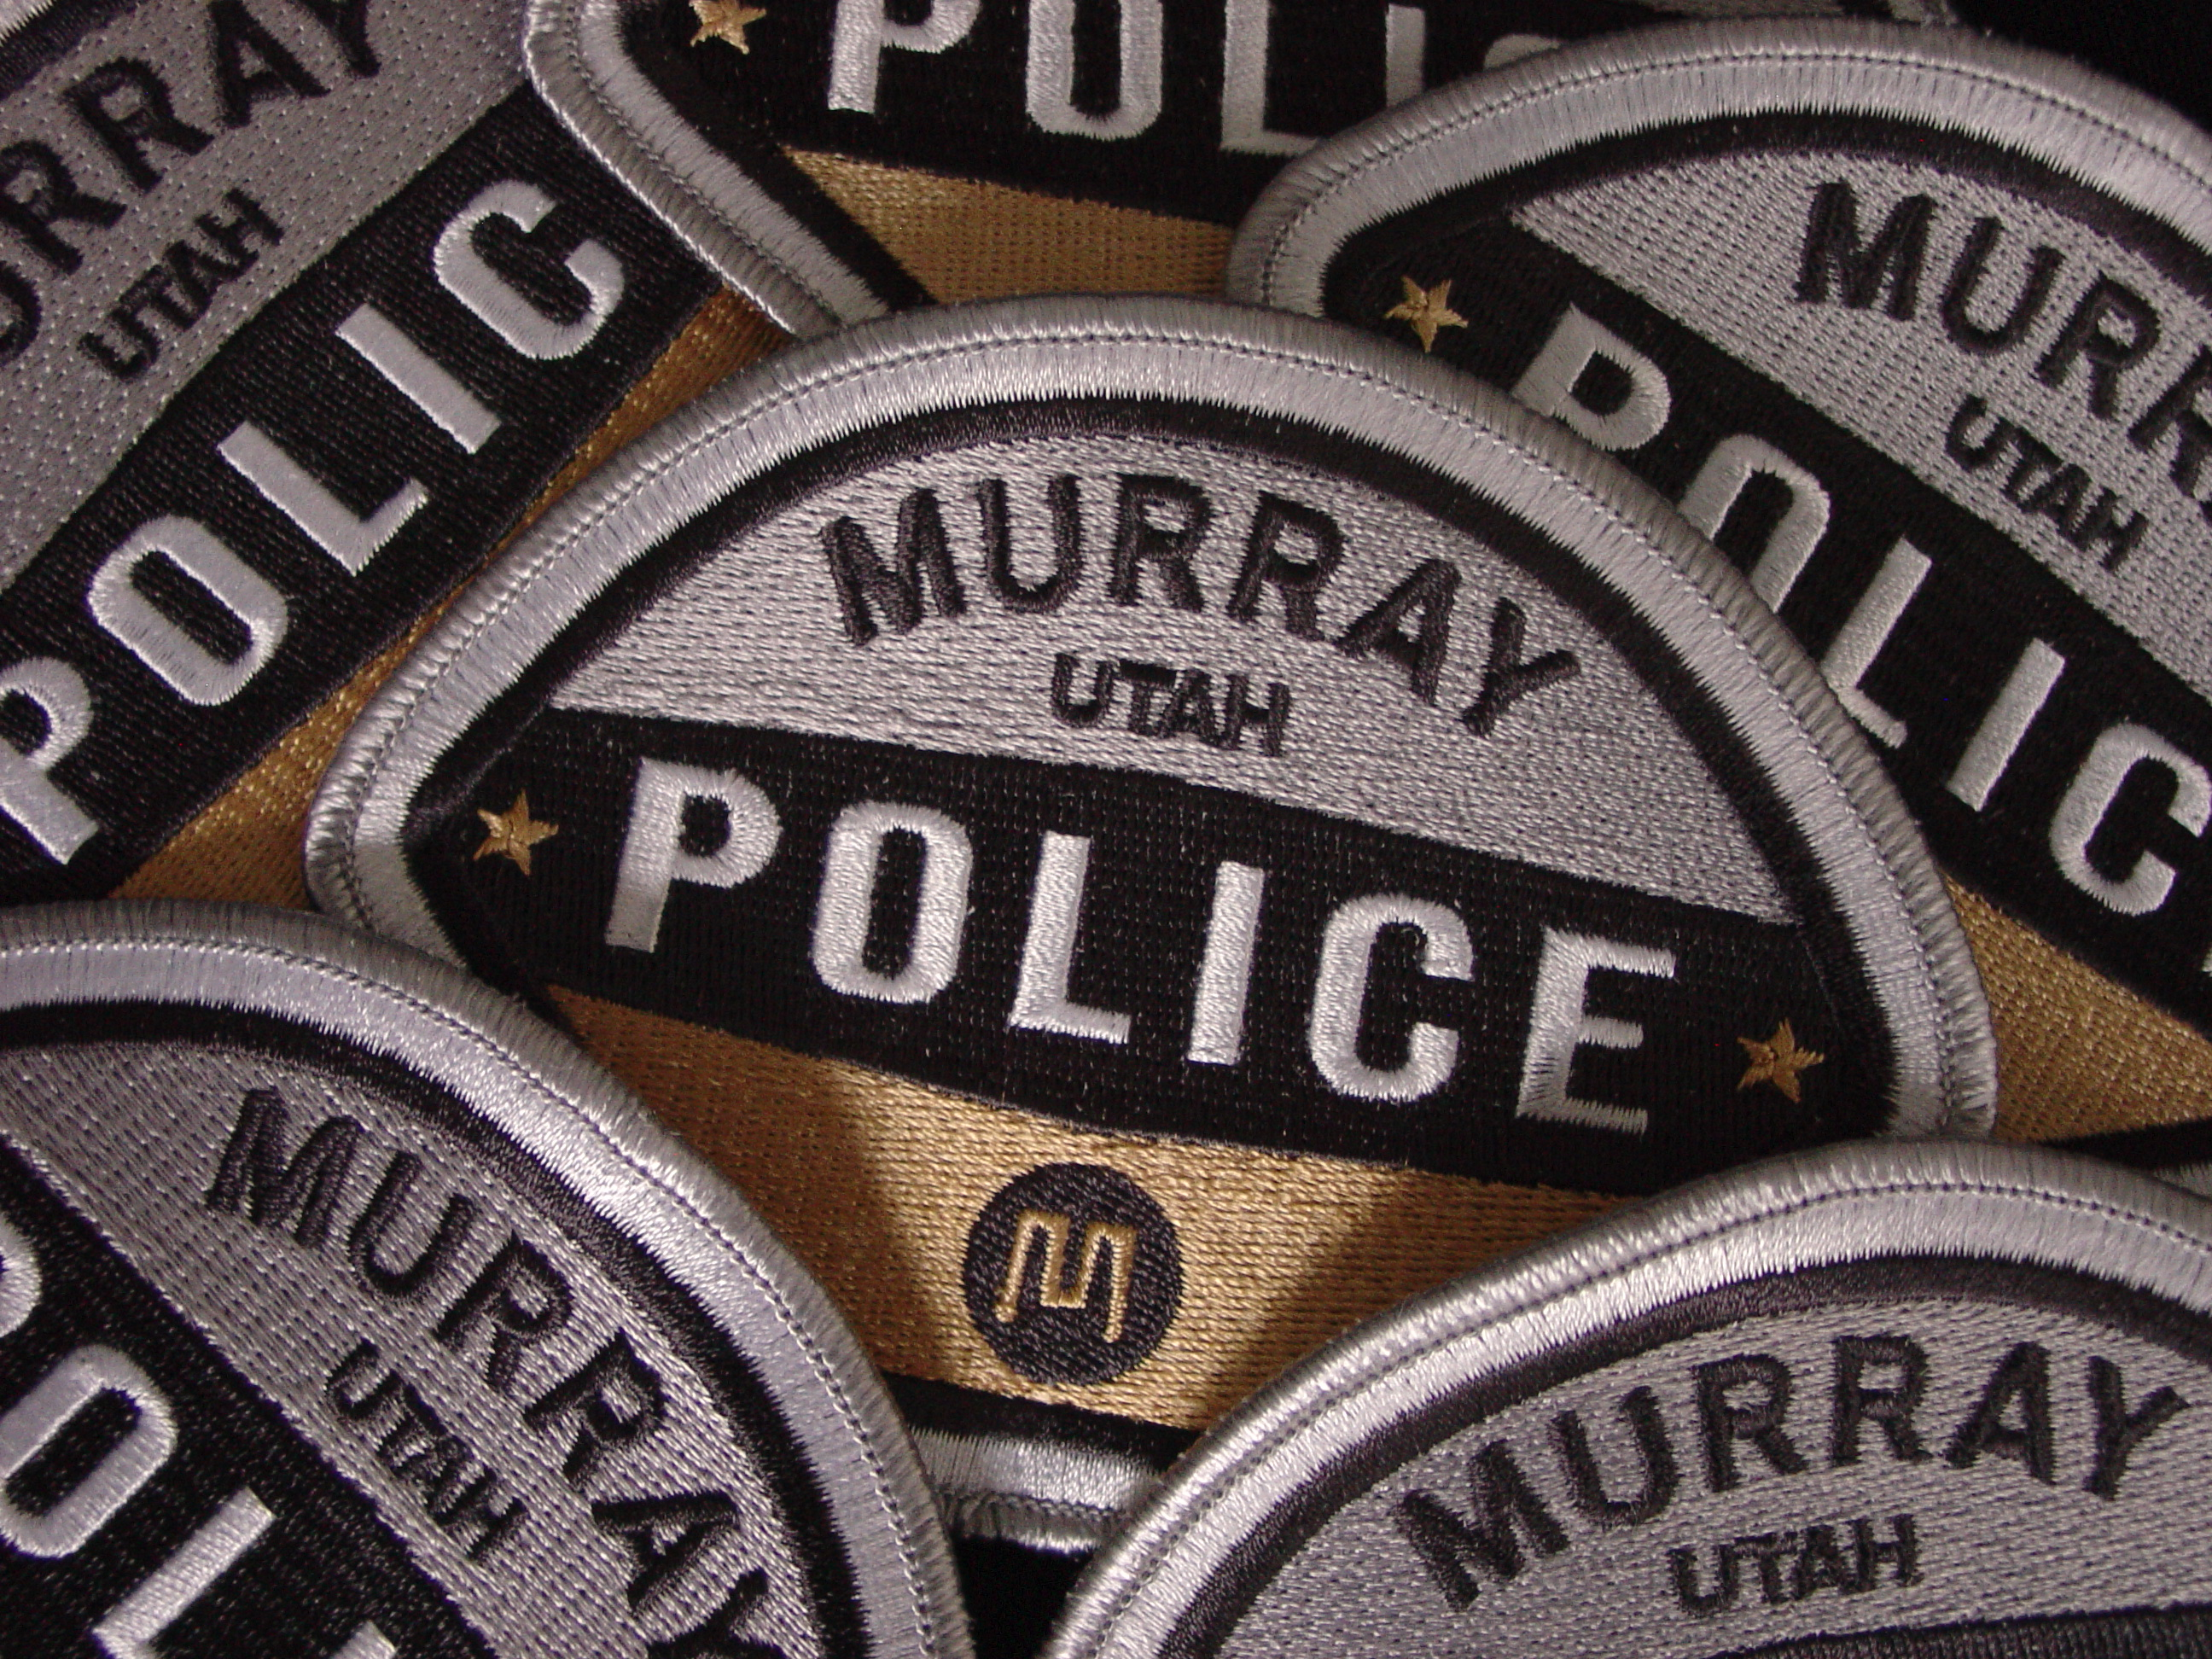 Murray City Police Patches